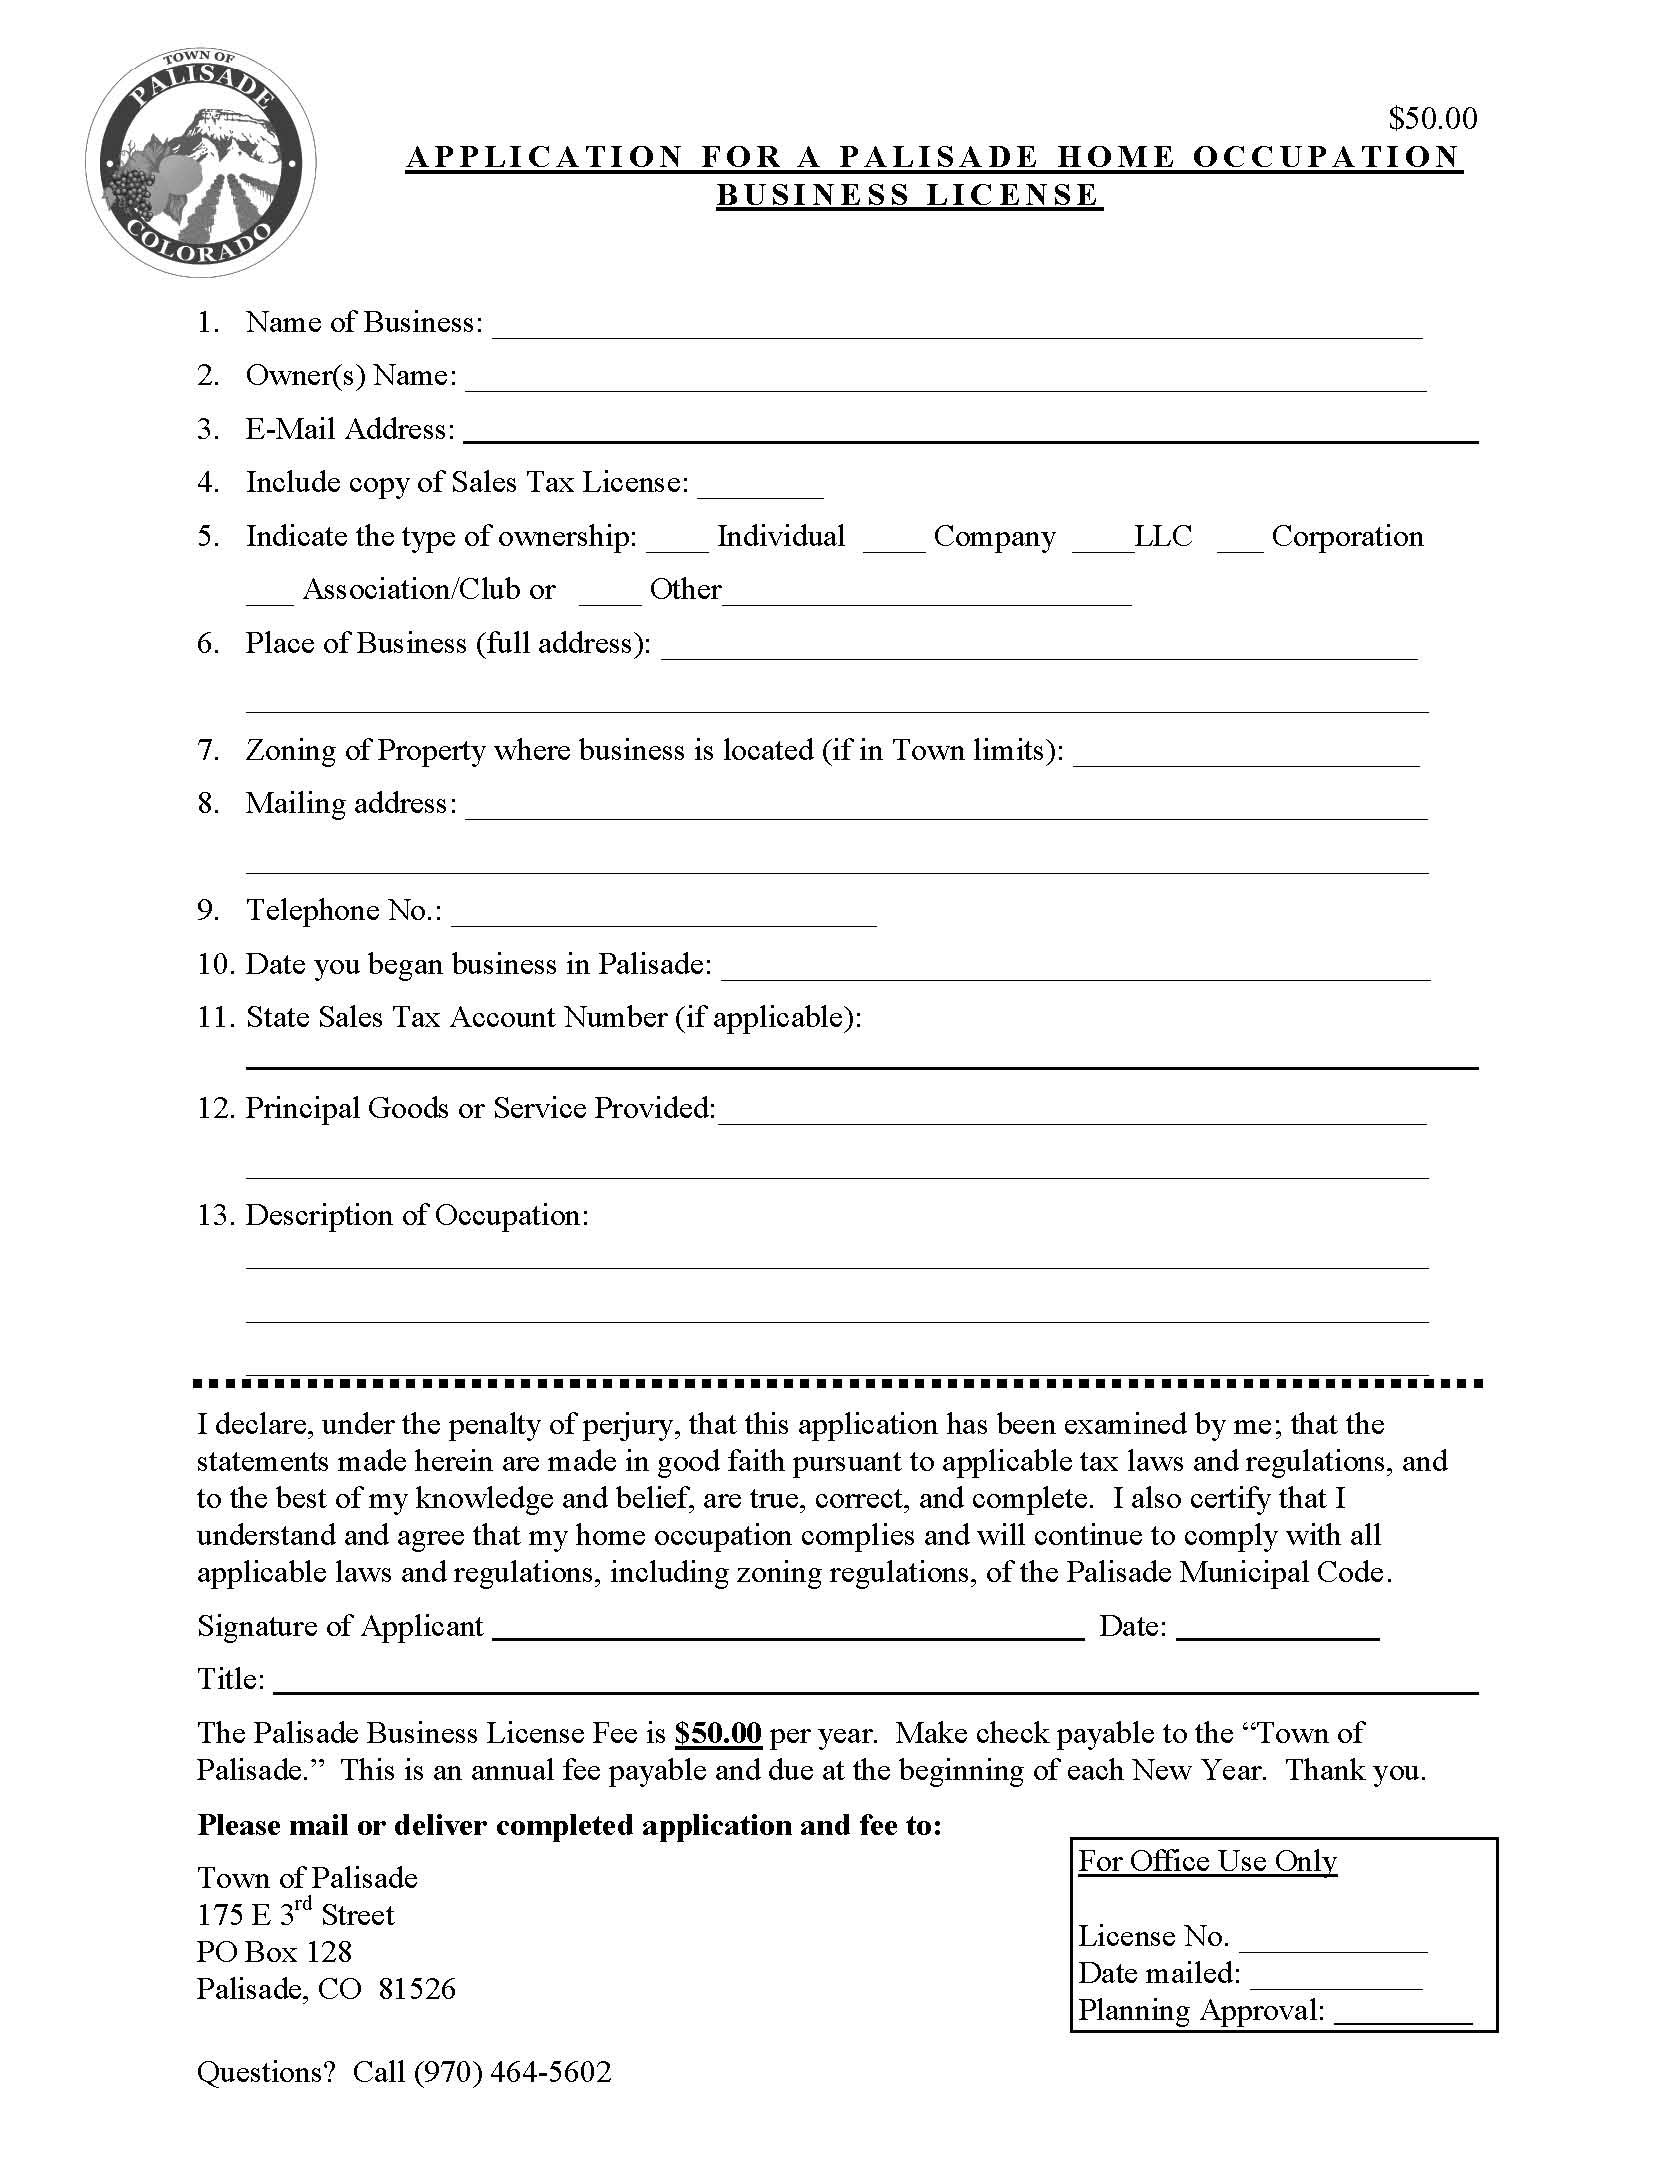 Home Business License Application Page 1